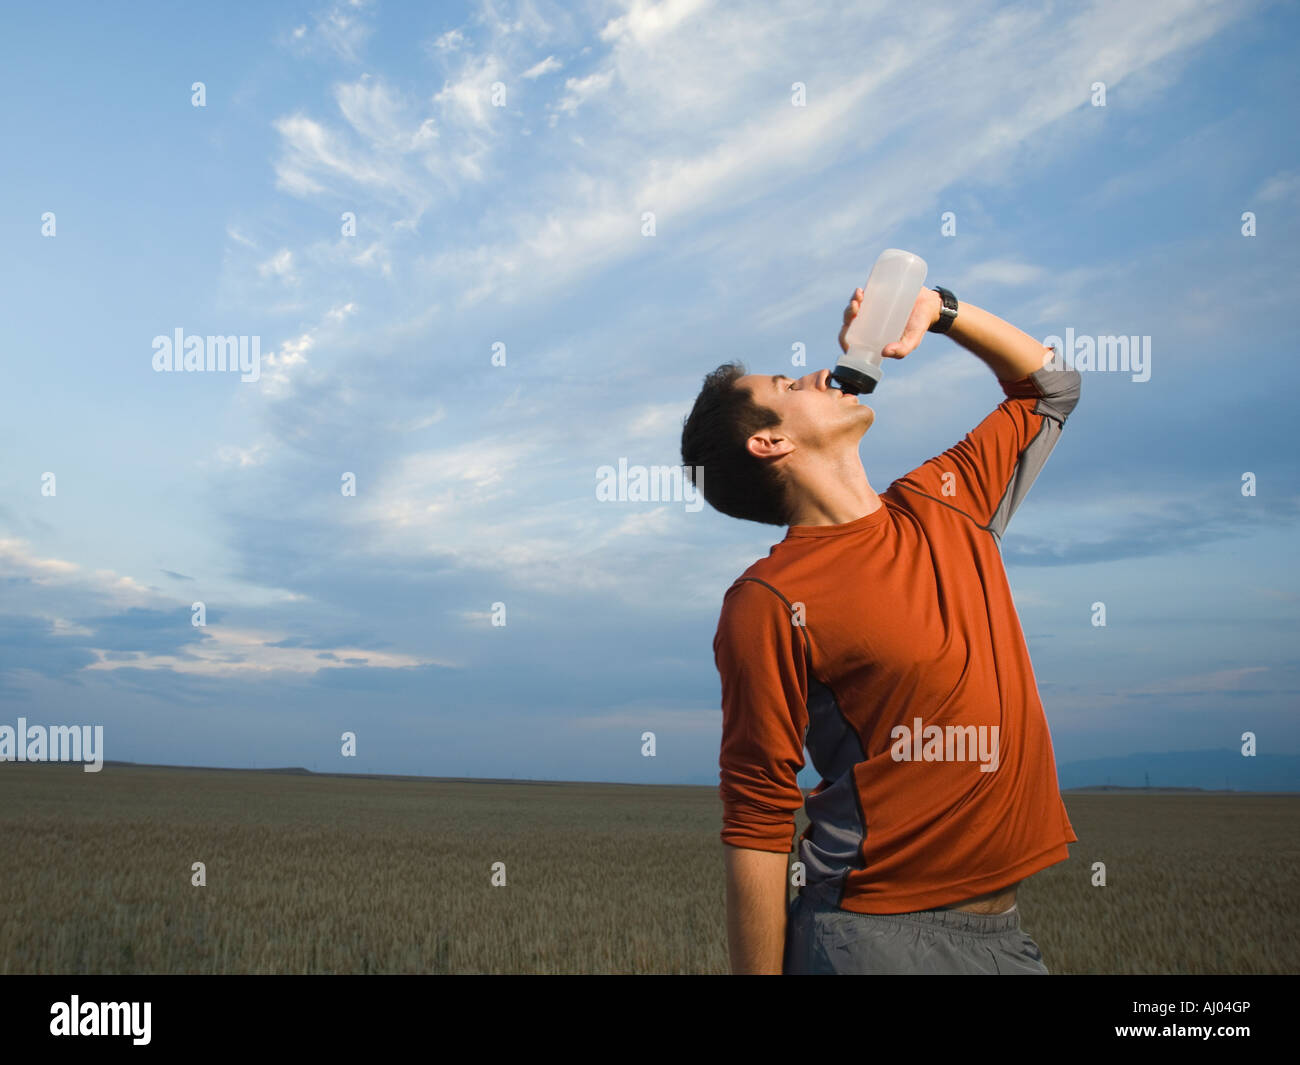 Man in athletic gear drinking water - Stock Image